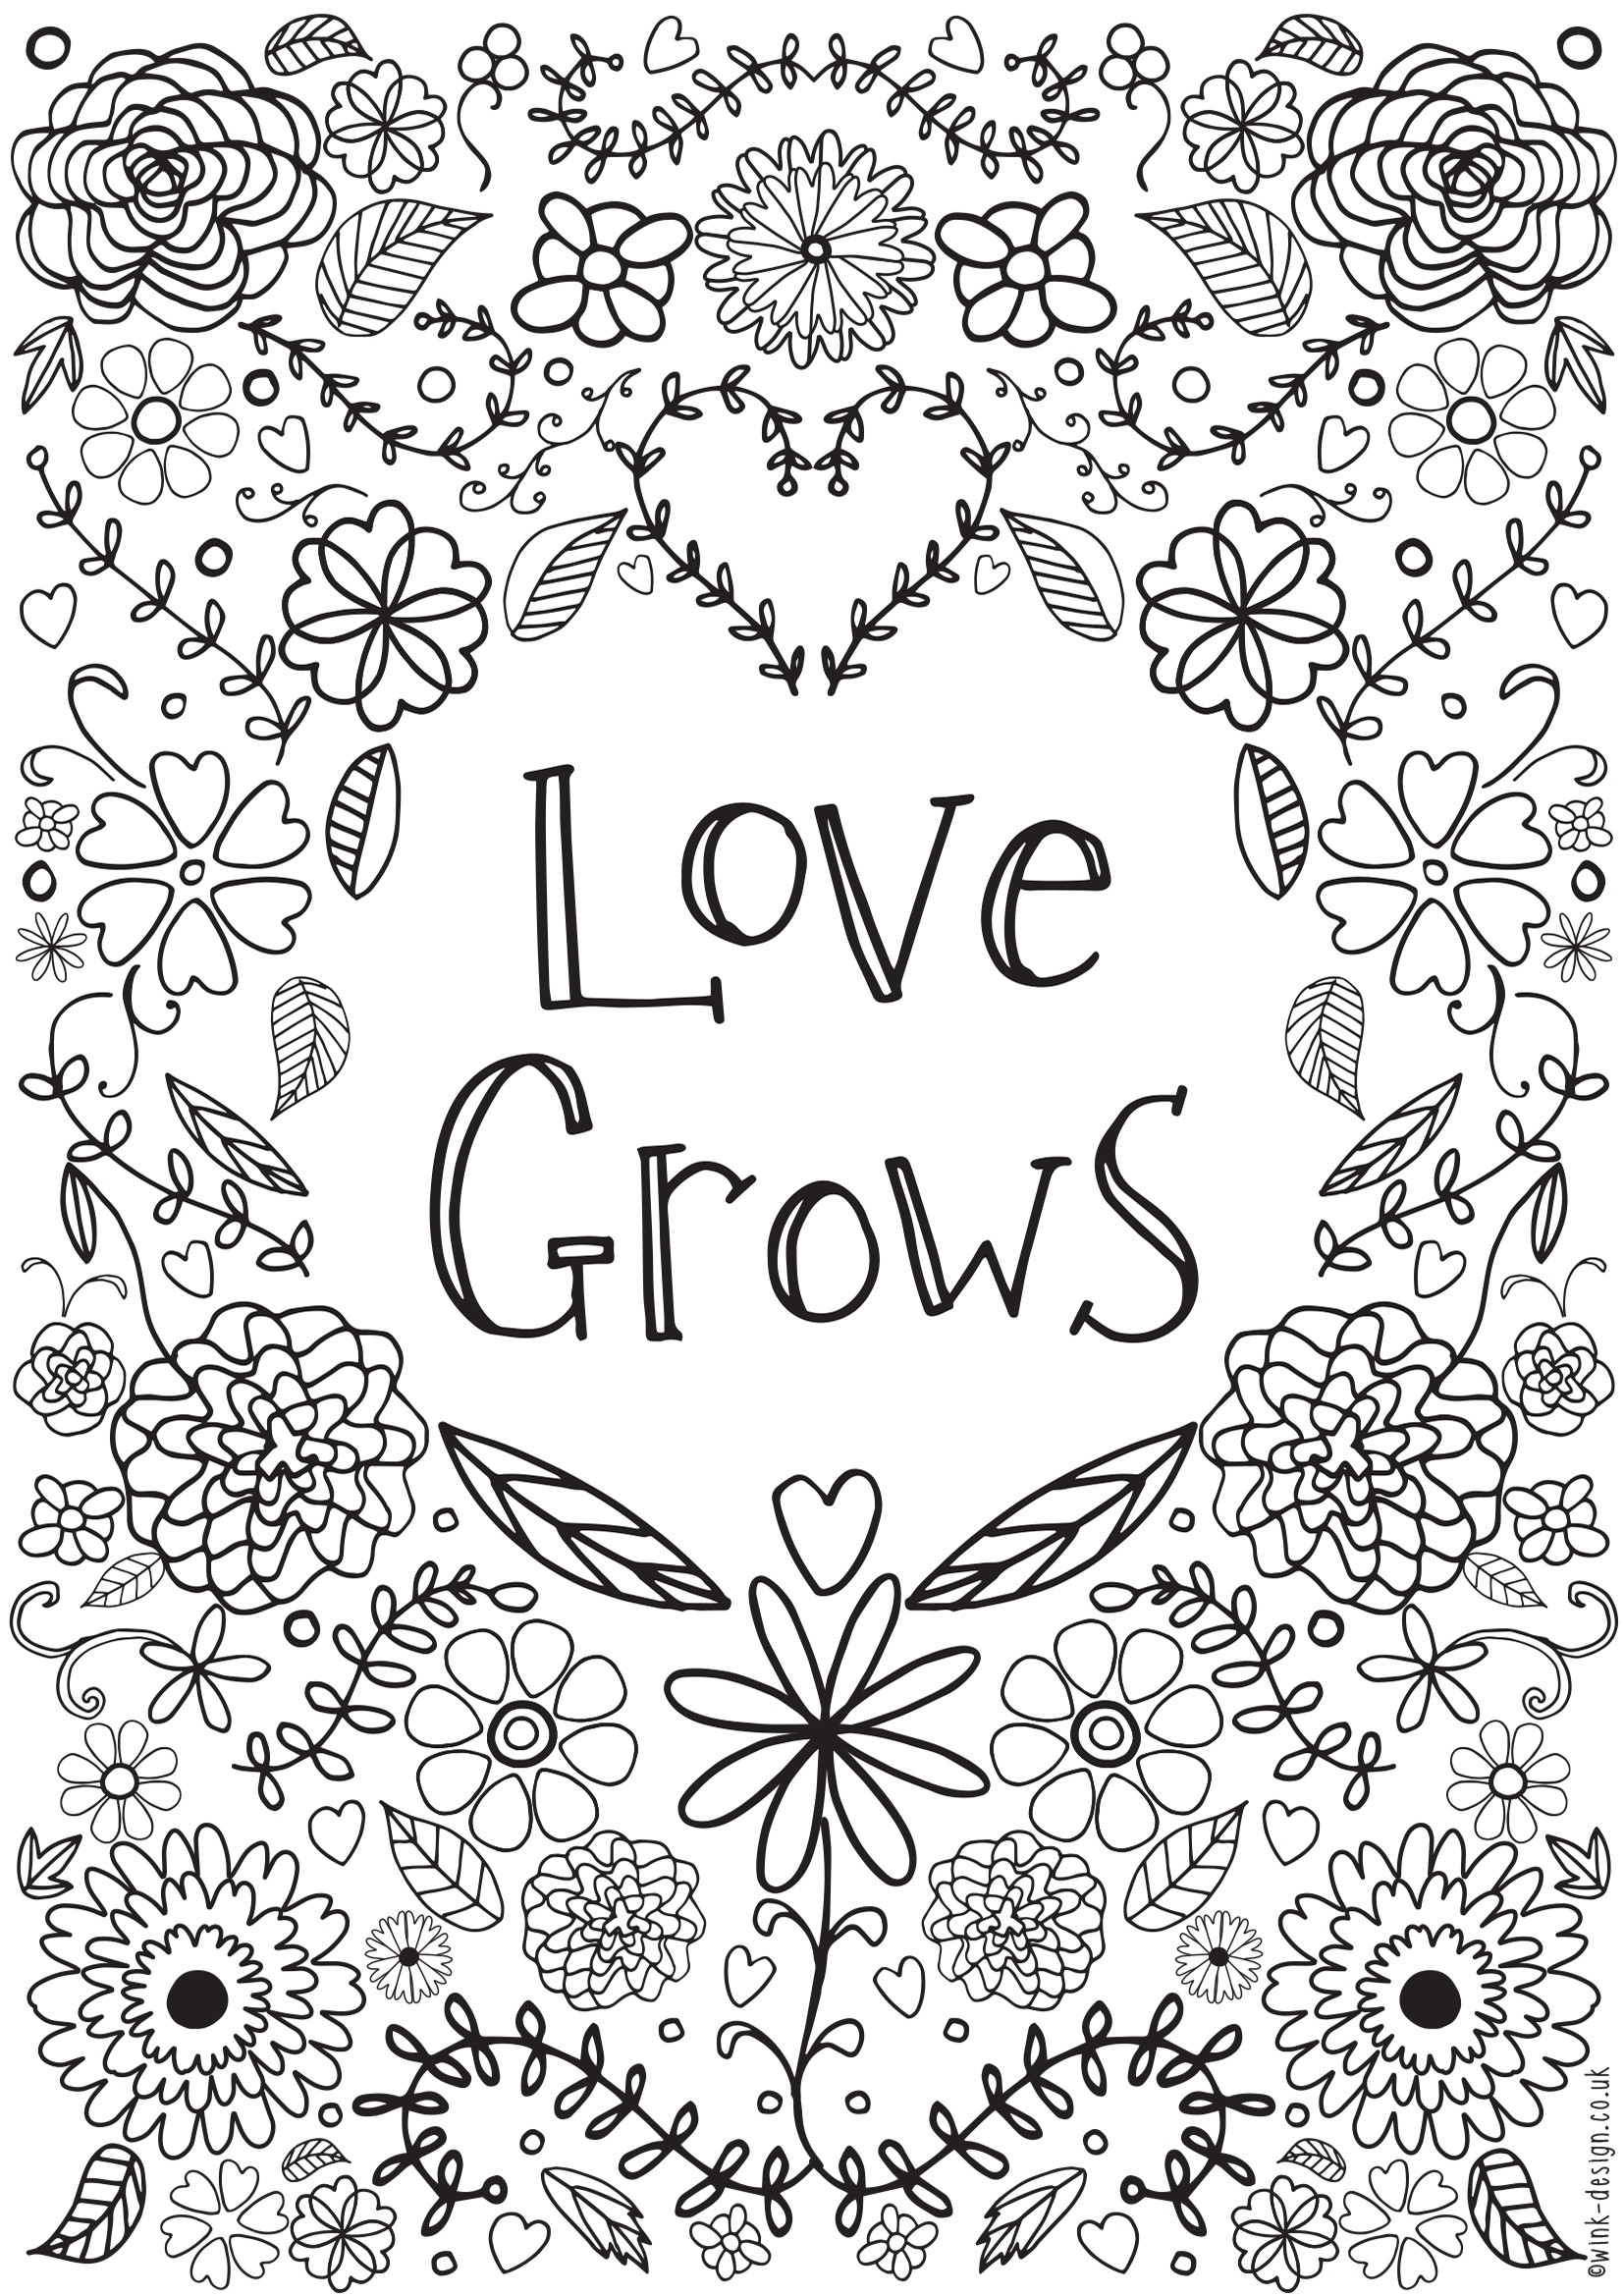 Free Printable I Love You Coloring Pages For Adults  Free Printable Adult Colouring Pages Inspirational Quotes